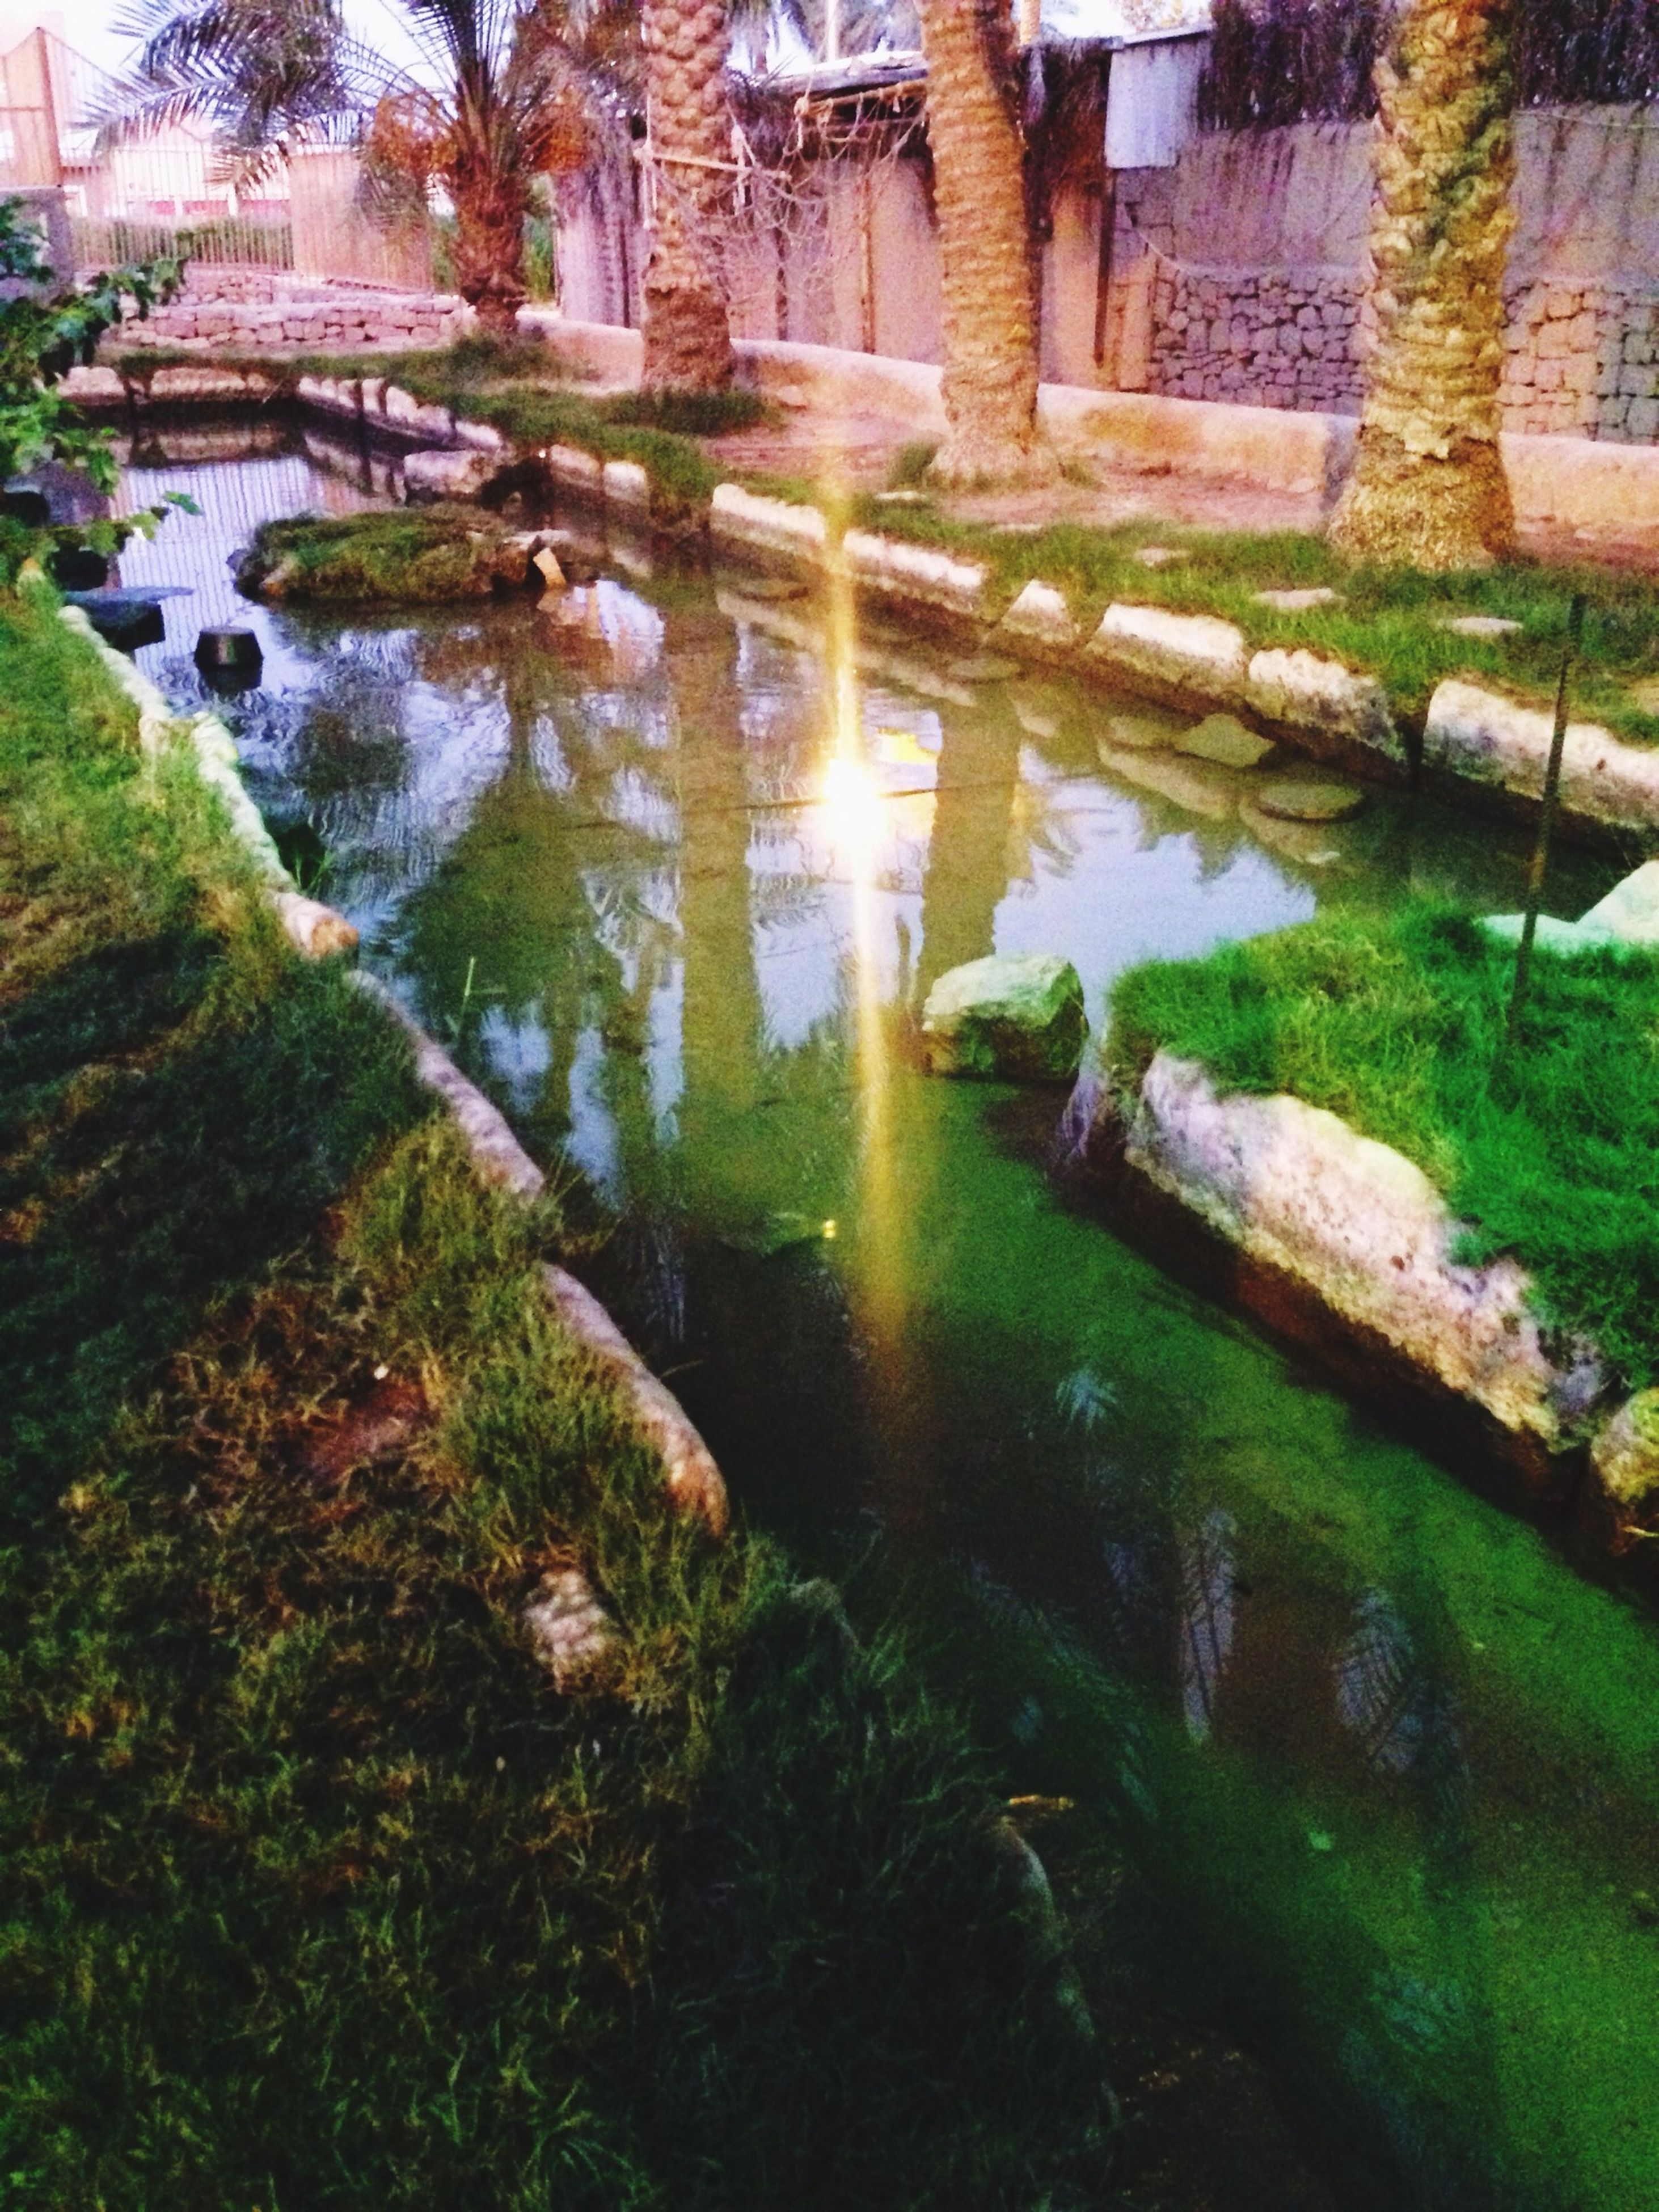 water, reflection, built structure, architecture, grass, pond, building exterior, tree, nature, green color, canal, high angle view, plant, sunlight, stream, tranquility, river, growth, outdoors, no people